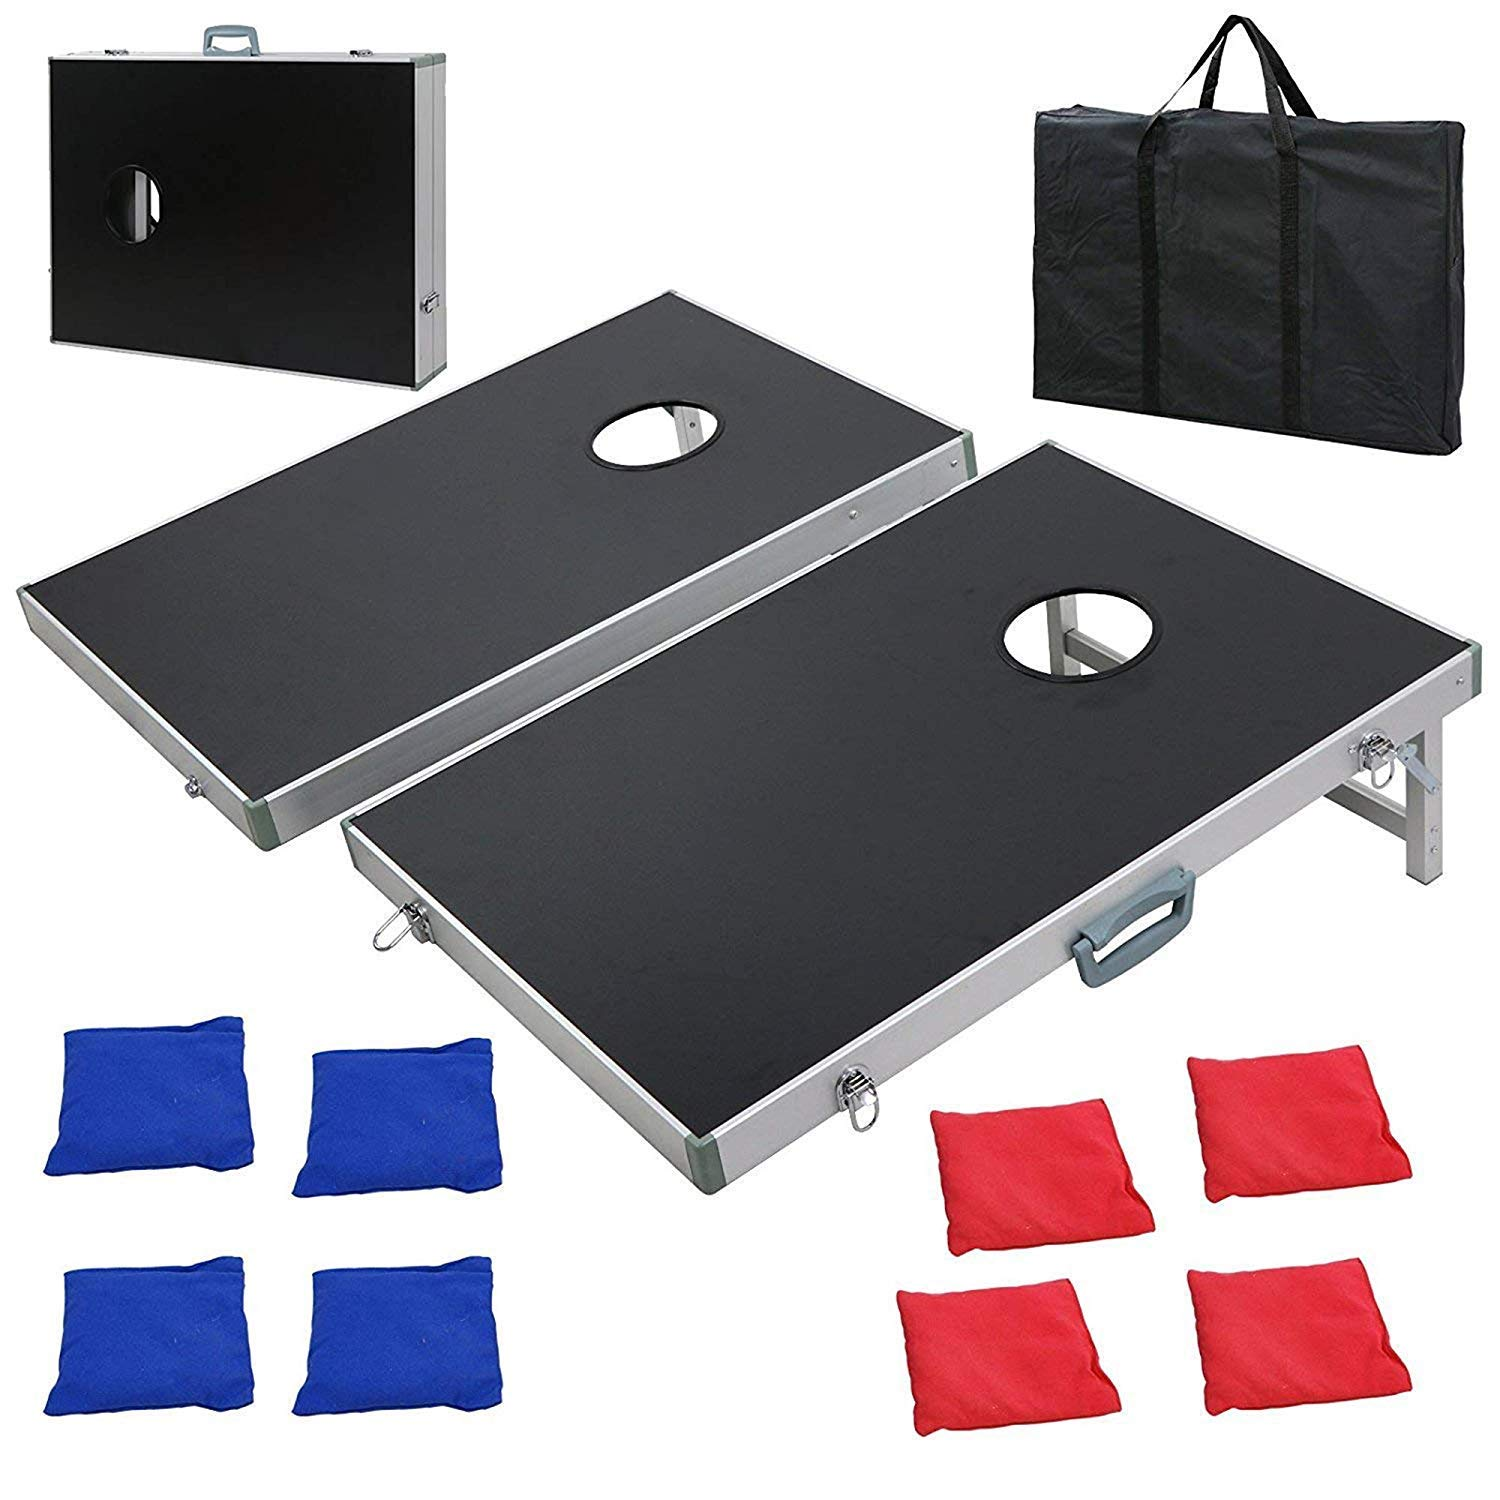 F2C Portable Aluminum/PVC Framed Bean Bag Cornhole Toss Game Set Boards 3FT 2FT/4FT 2FT W/ 8 Bean Bags and Carrying Case| Original Black, Classic Red& Blue to Choose (3FT2FT Black Aluminum)